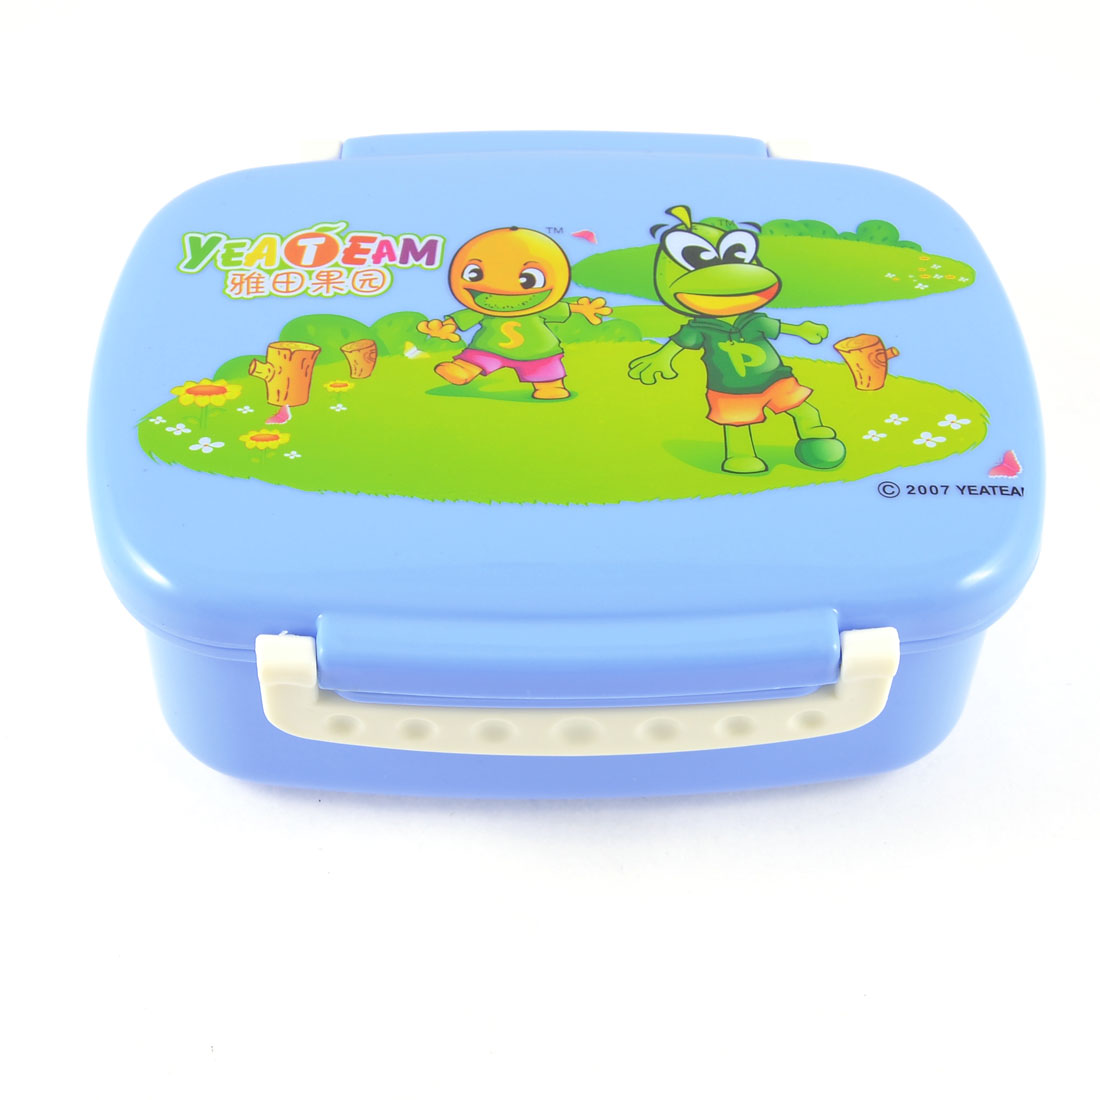 Traveling Cartoon Print Blue Plastic Food Container Lunch Box Case w Green Spoon